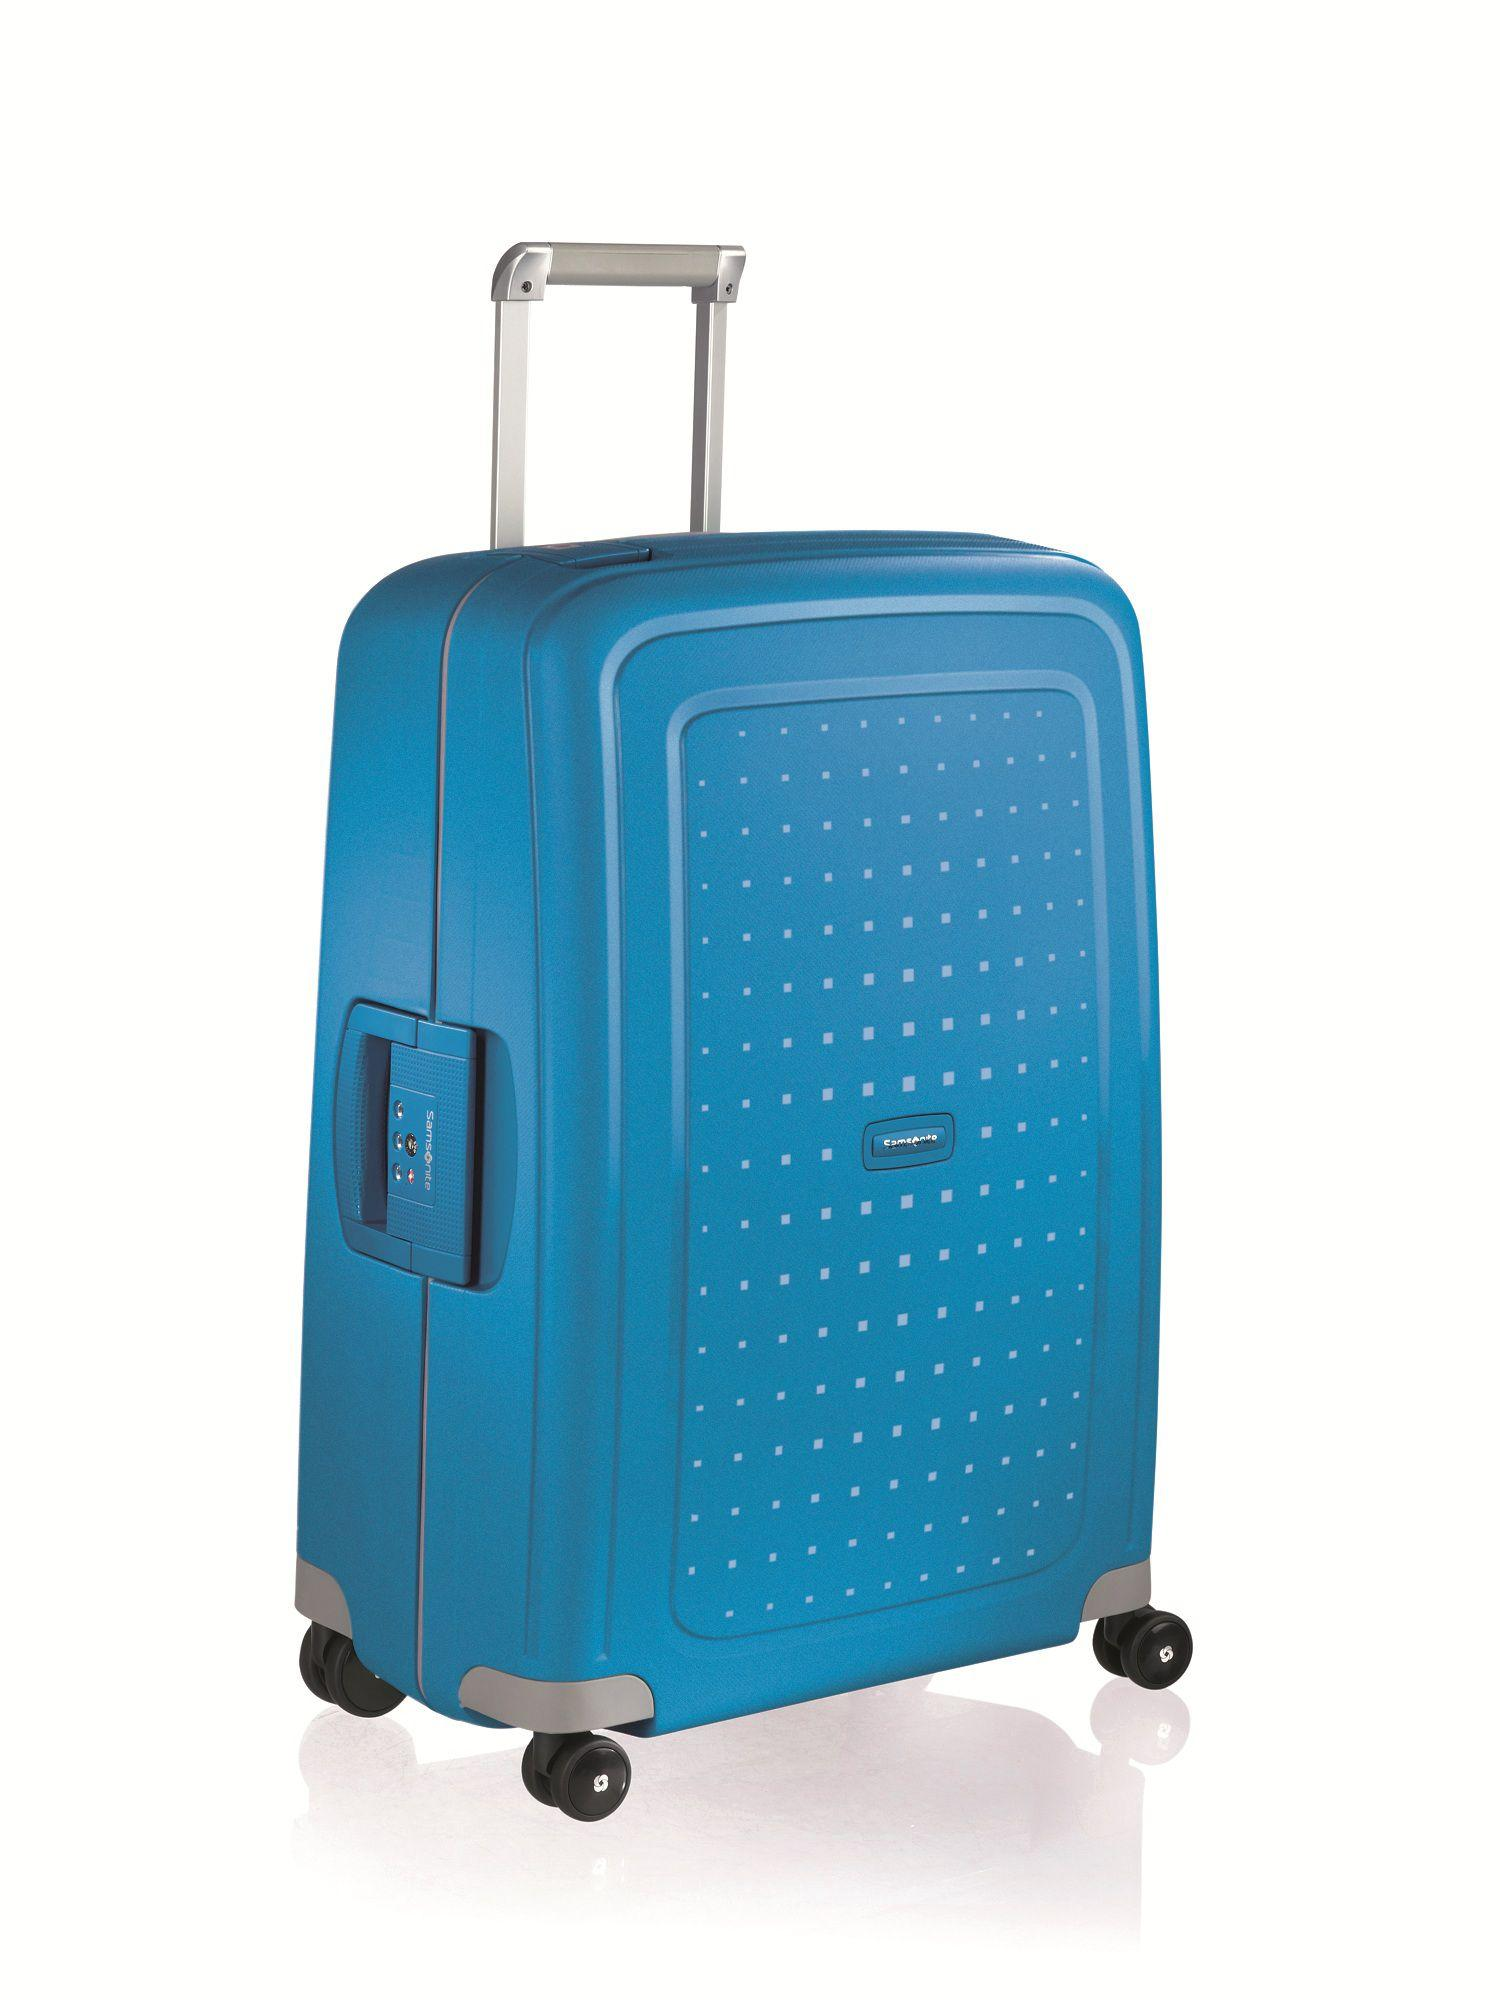 764fffde59ad2 Samsonite S`cure Pacific Blue 8 Wheel 75cm Large Case in Blue - Lyst